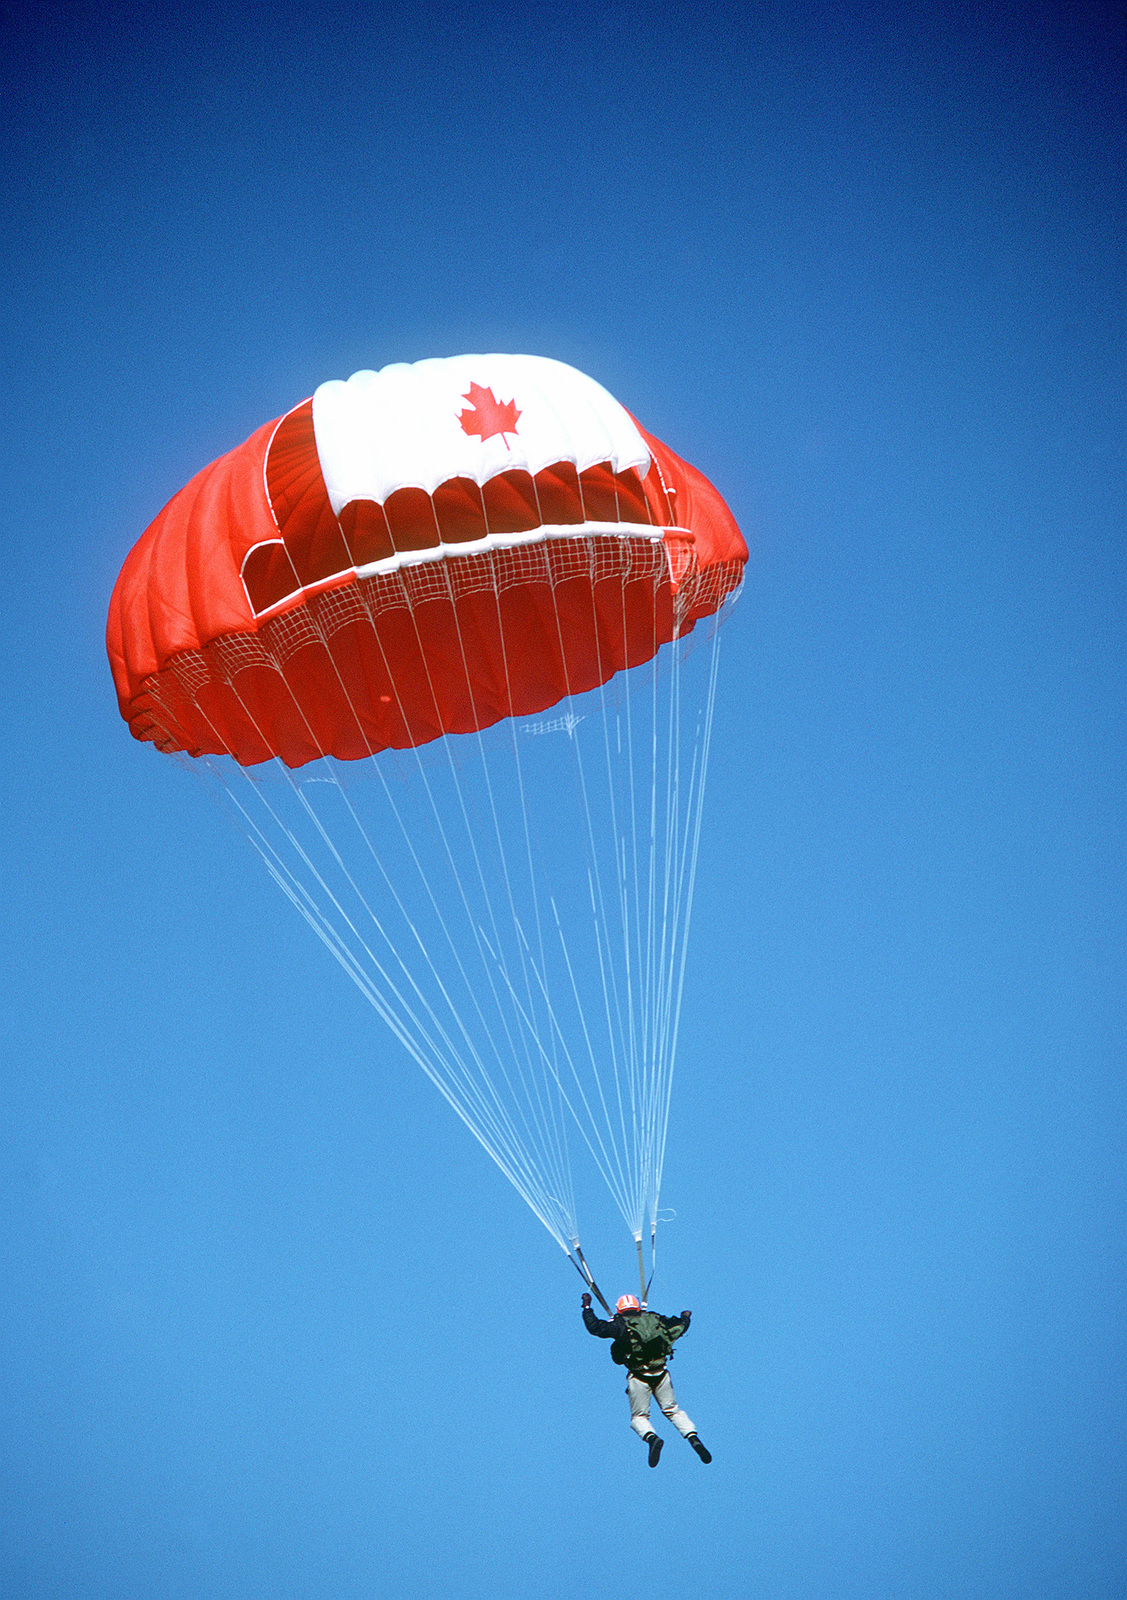 A Canadian jumper floats down during a competitive parachute jump. The man is taking part in Sarex '80, a joint U.S.-Canadian pararescue exercise